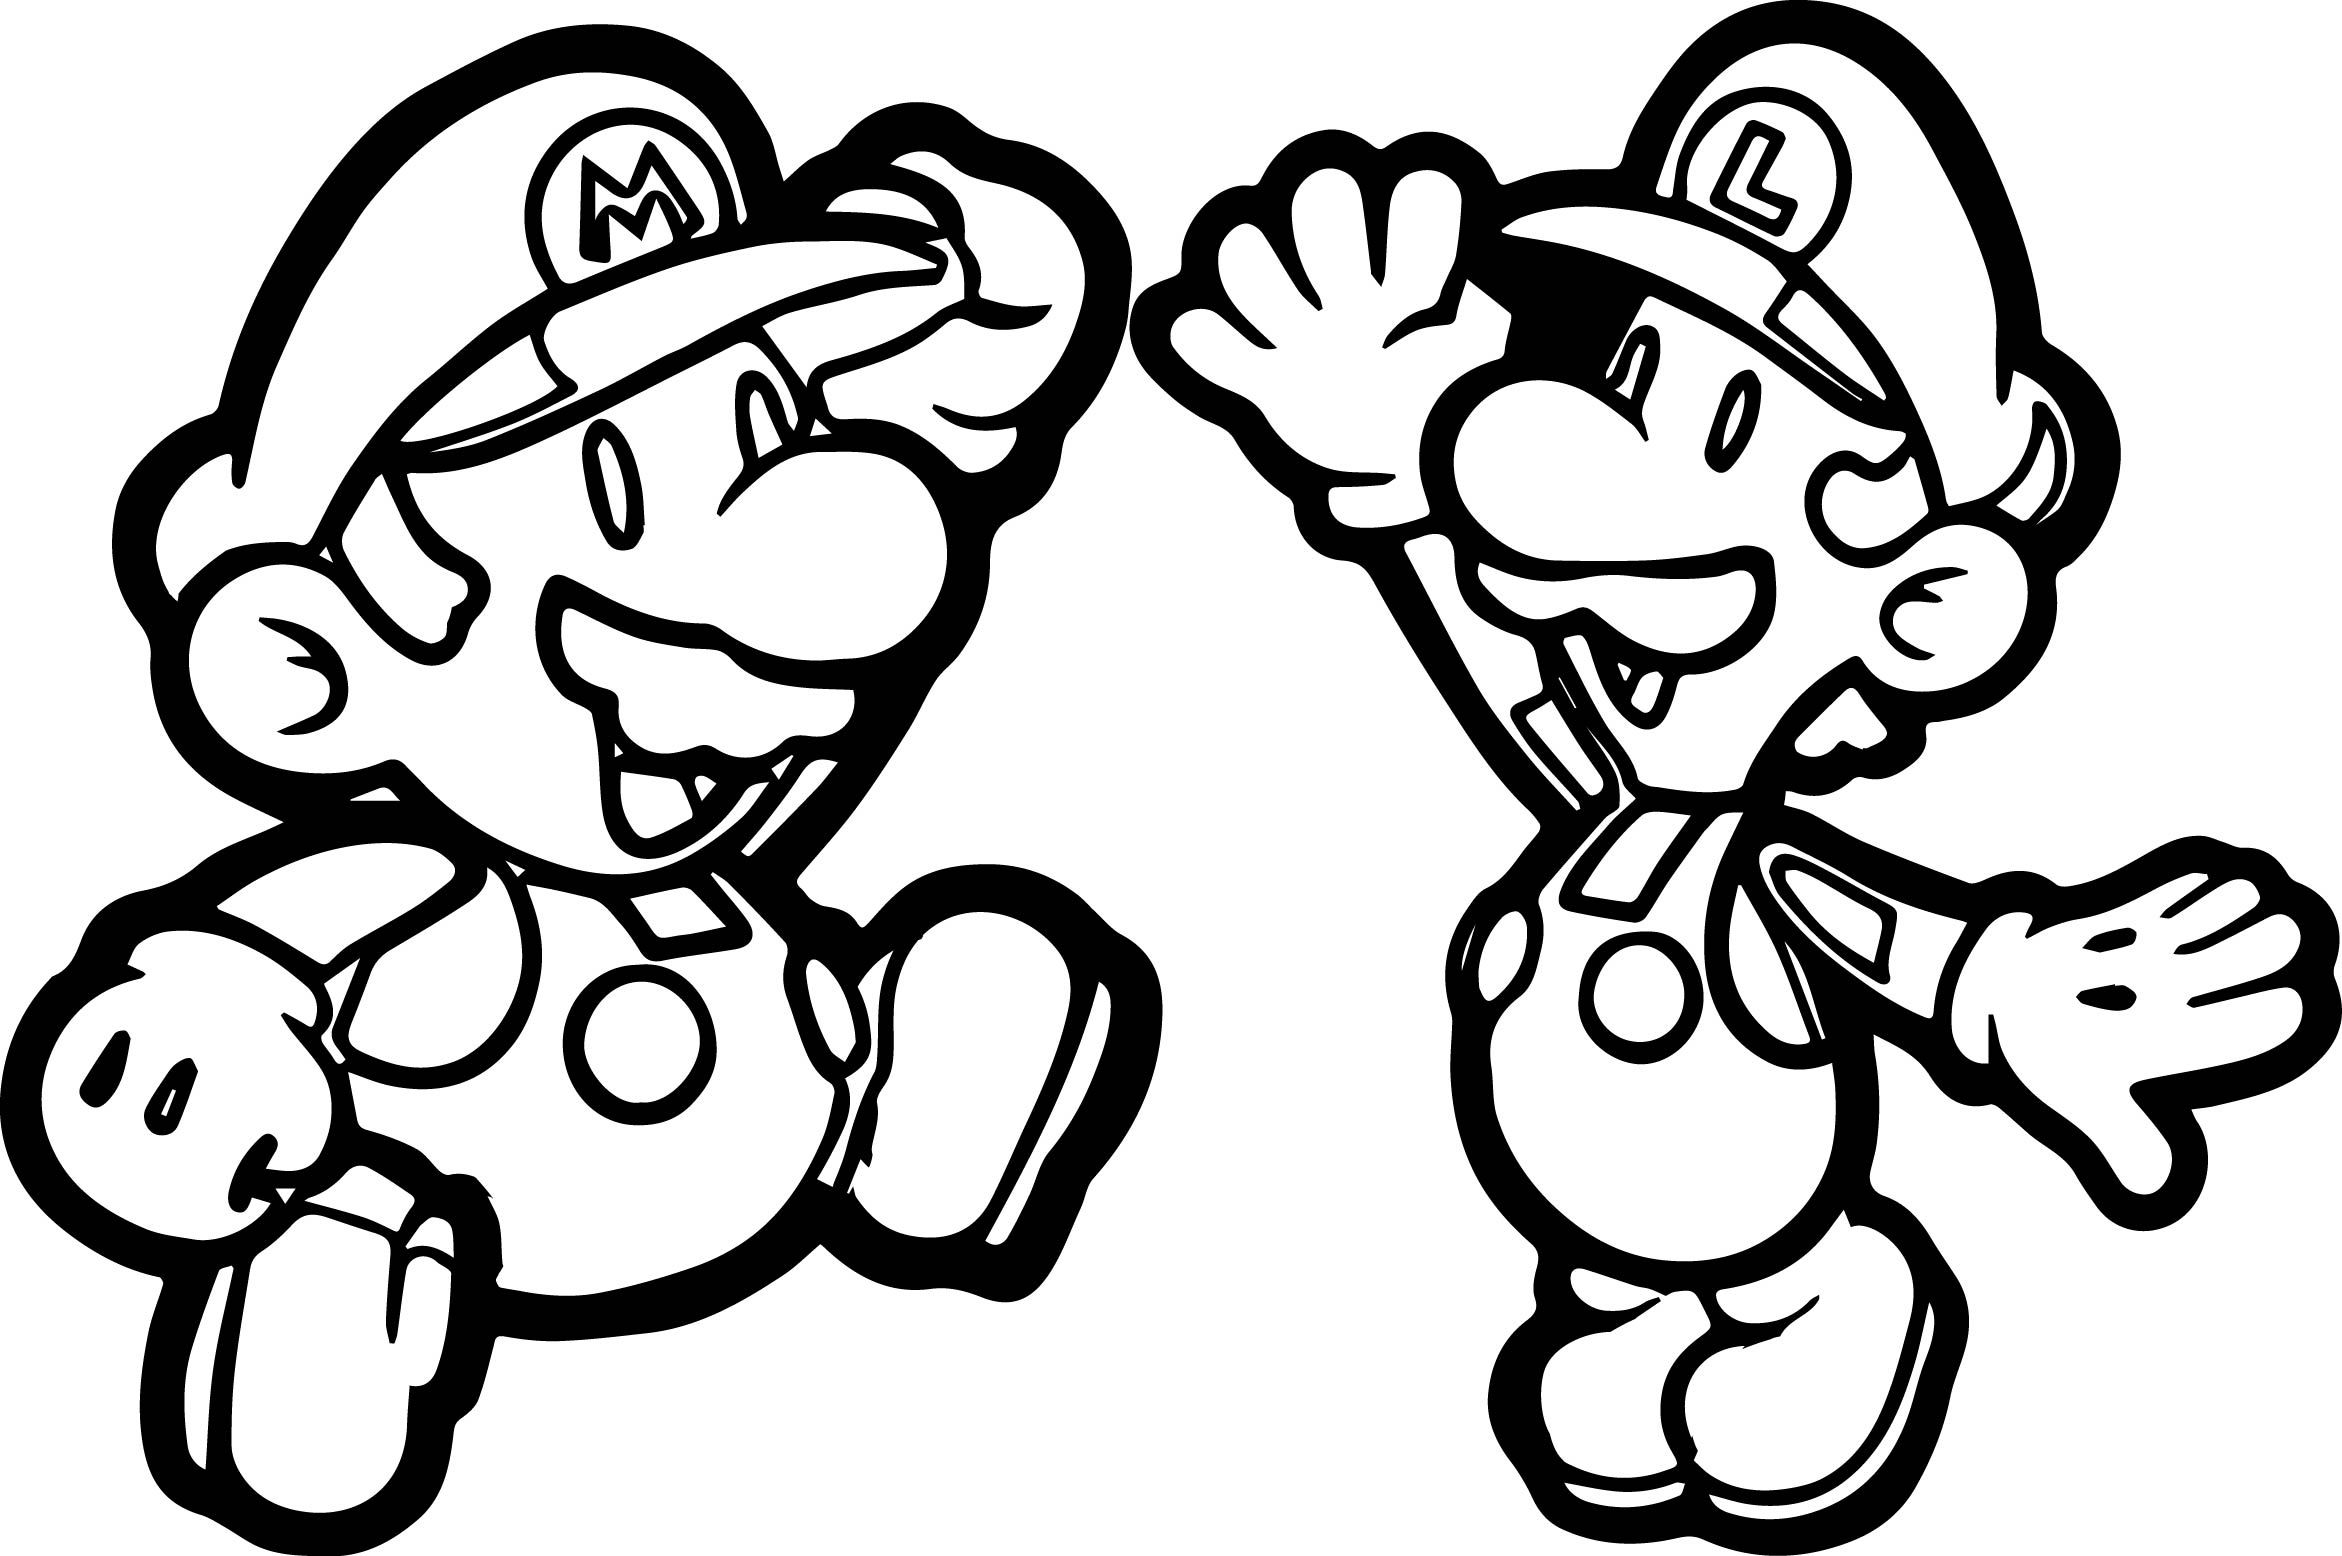 printable pictures of mario characters mario coloring pages to print minister coloring of pictures characters printable mario